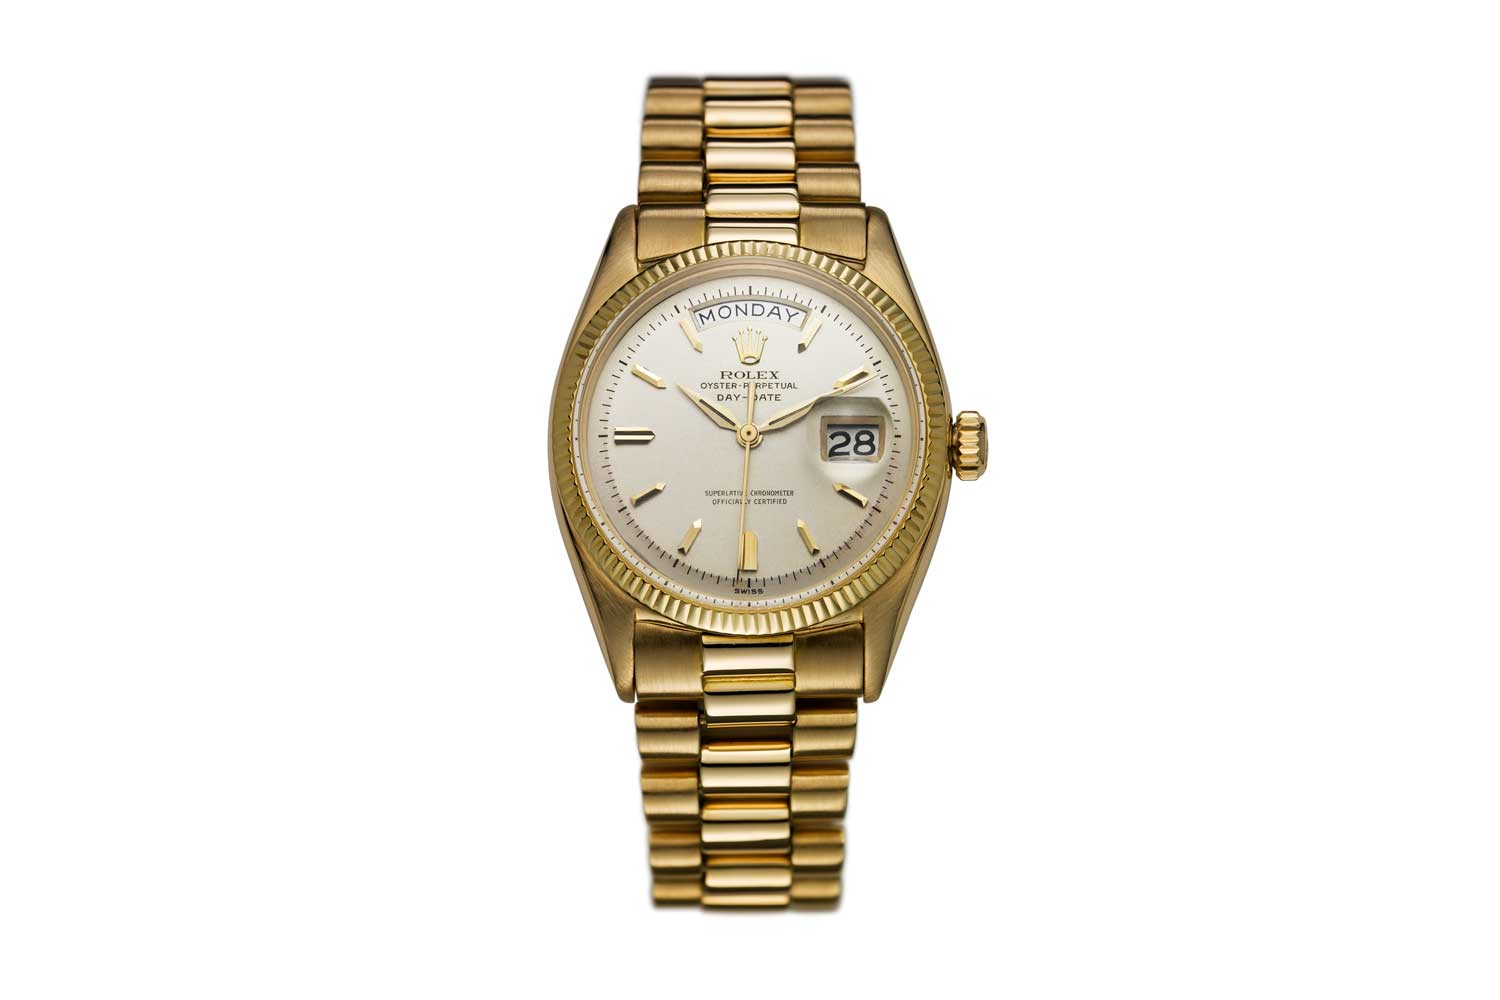 Rolex first unveiled the Day-Date in 1956